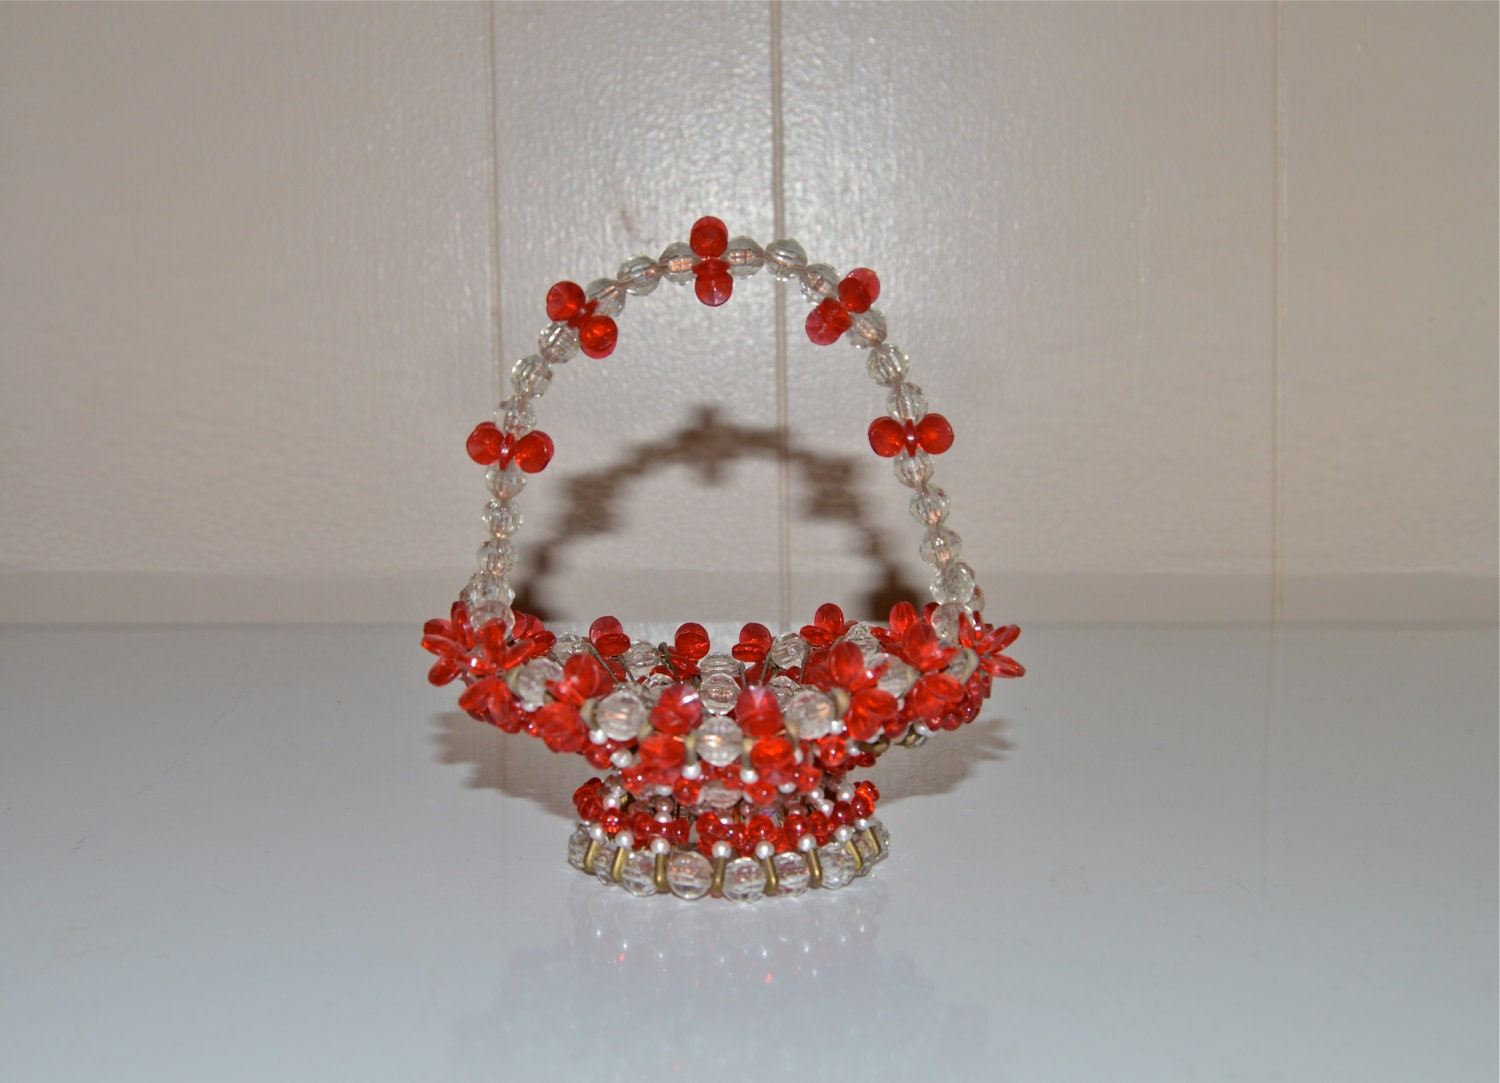 Handmade Beaded Basket : Bead basket safety pin beaded handcrafted by wvpickin